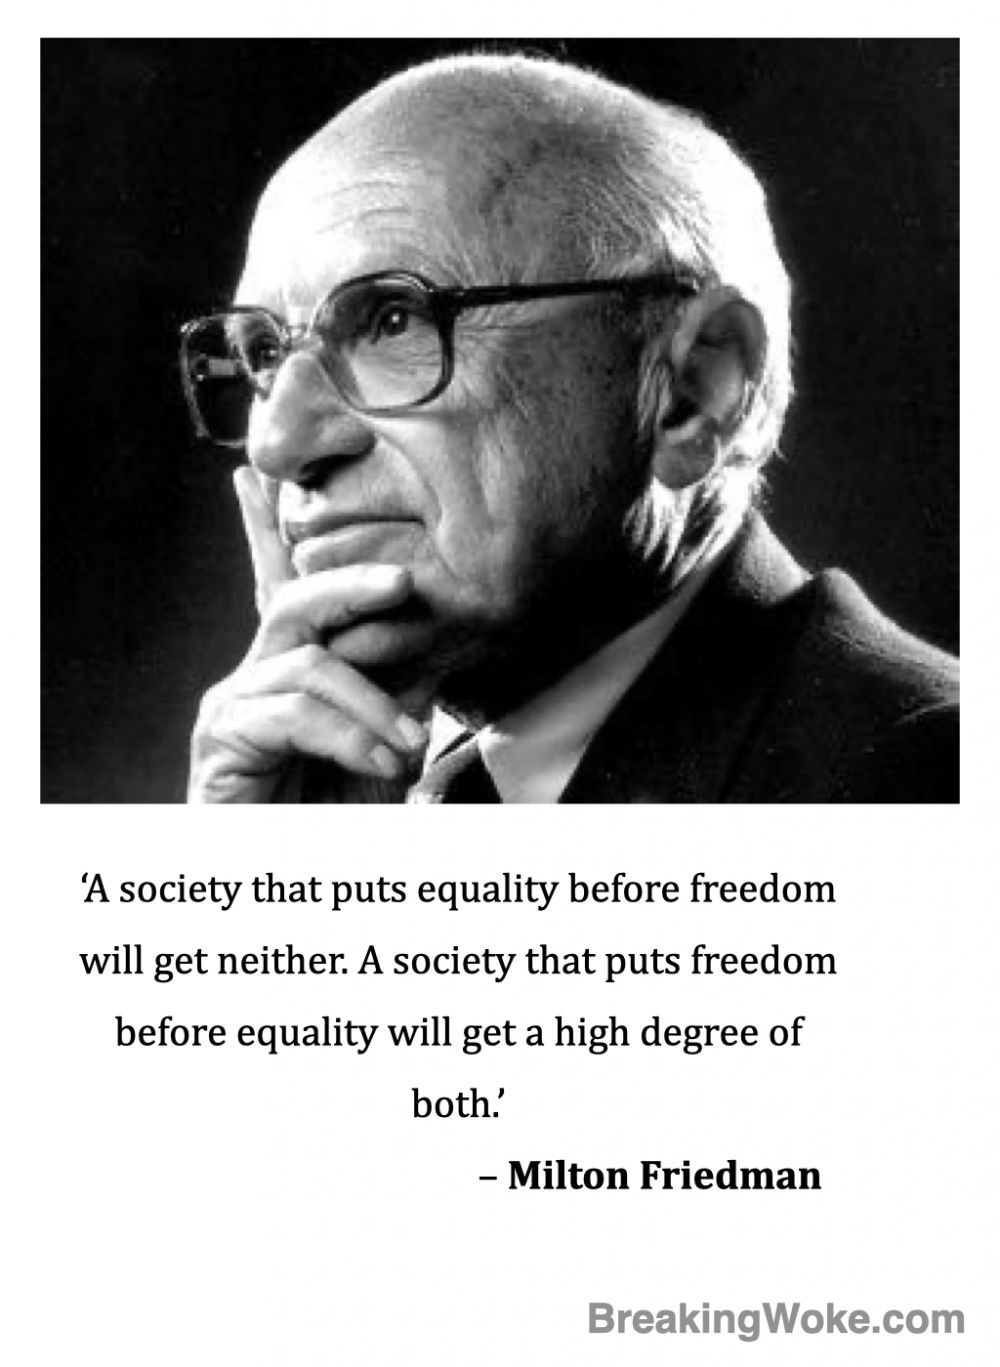 Freedom and Equality